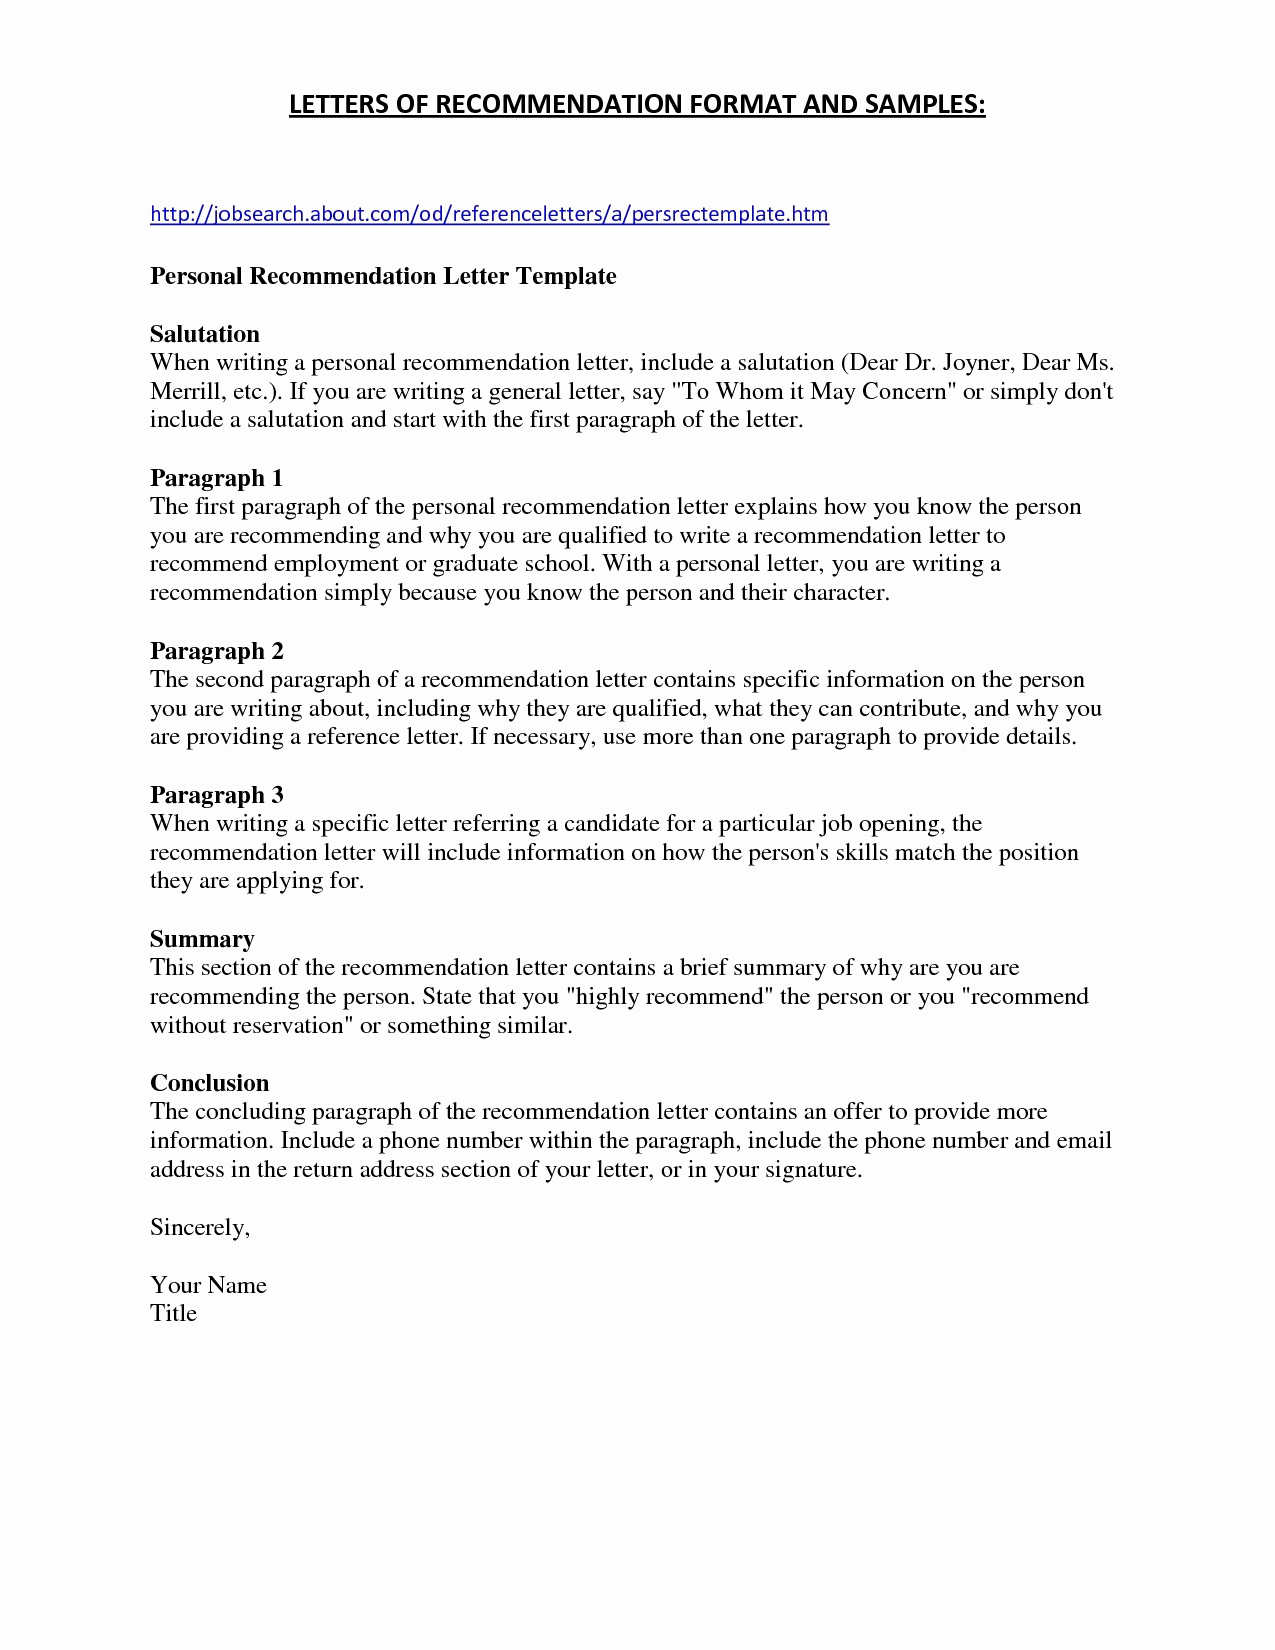 Guardian Letter Template - How to Write A Cover Letter Guardian Fresh formal Plaint Template